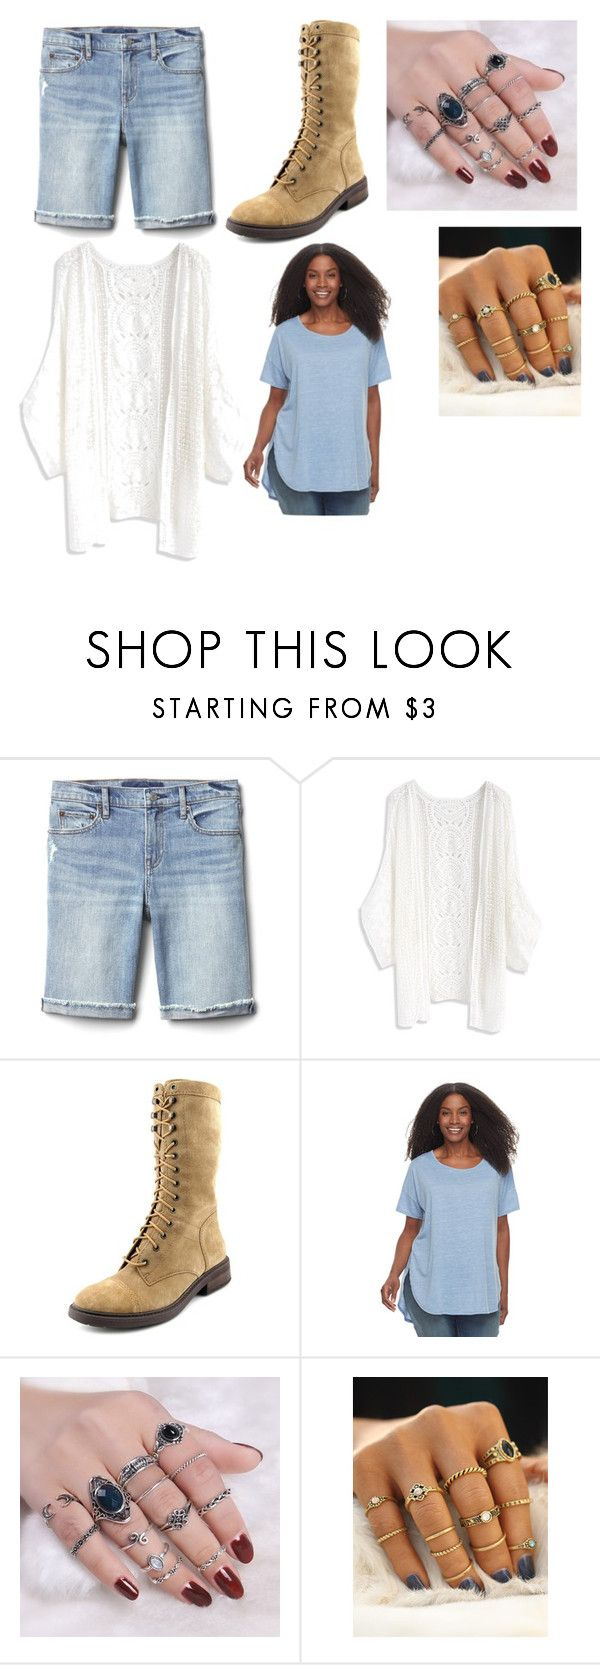 """Meh ain't dead......again"" by creepyemogirl2003 ❤ liked on Polyvore featuring Gap, Chicwish, Nine West, SONOMA Goods for Life and plus size clothing"